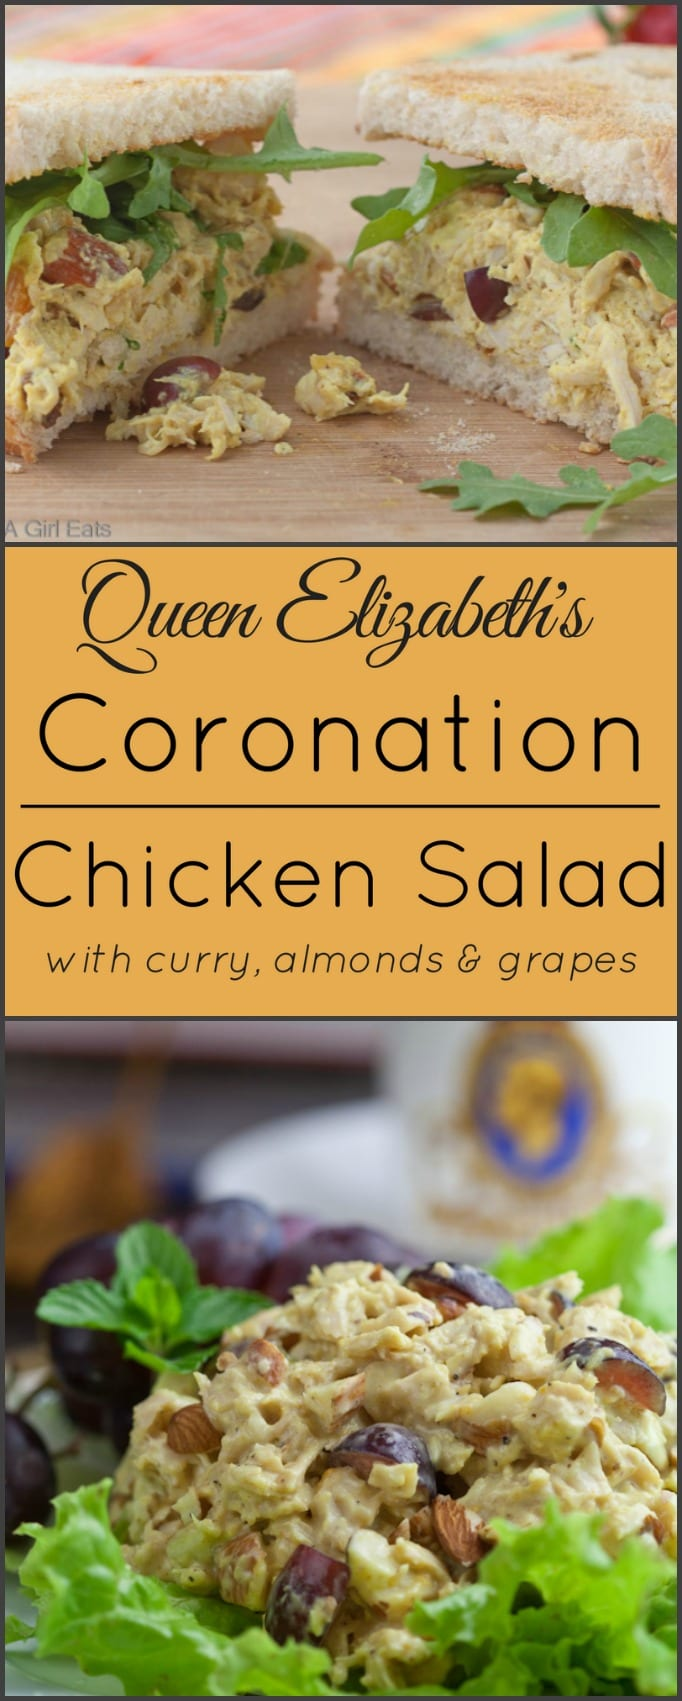 Coronation Chicken Salad - What A Girl Eats